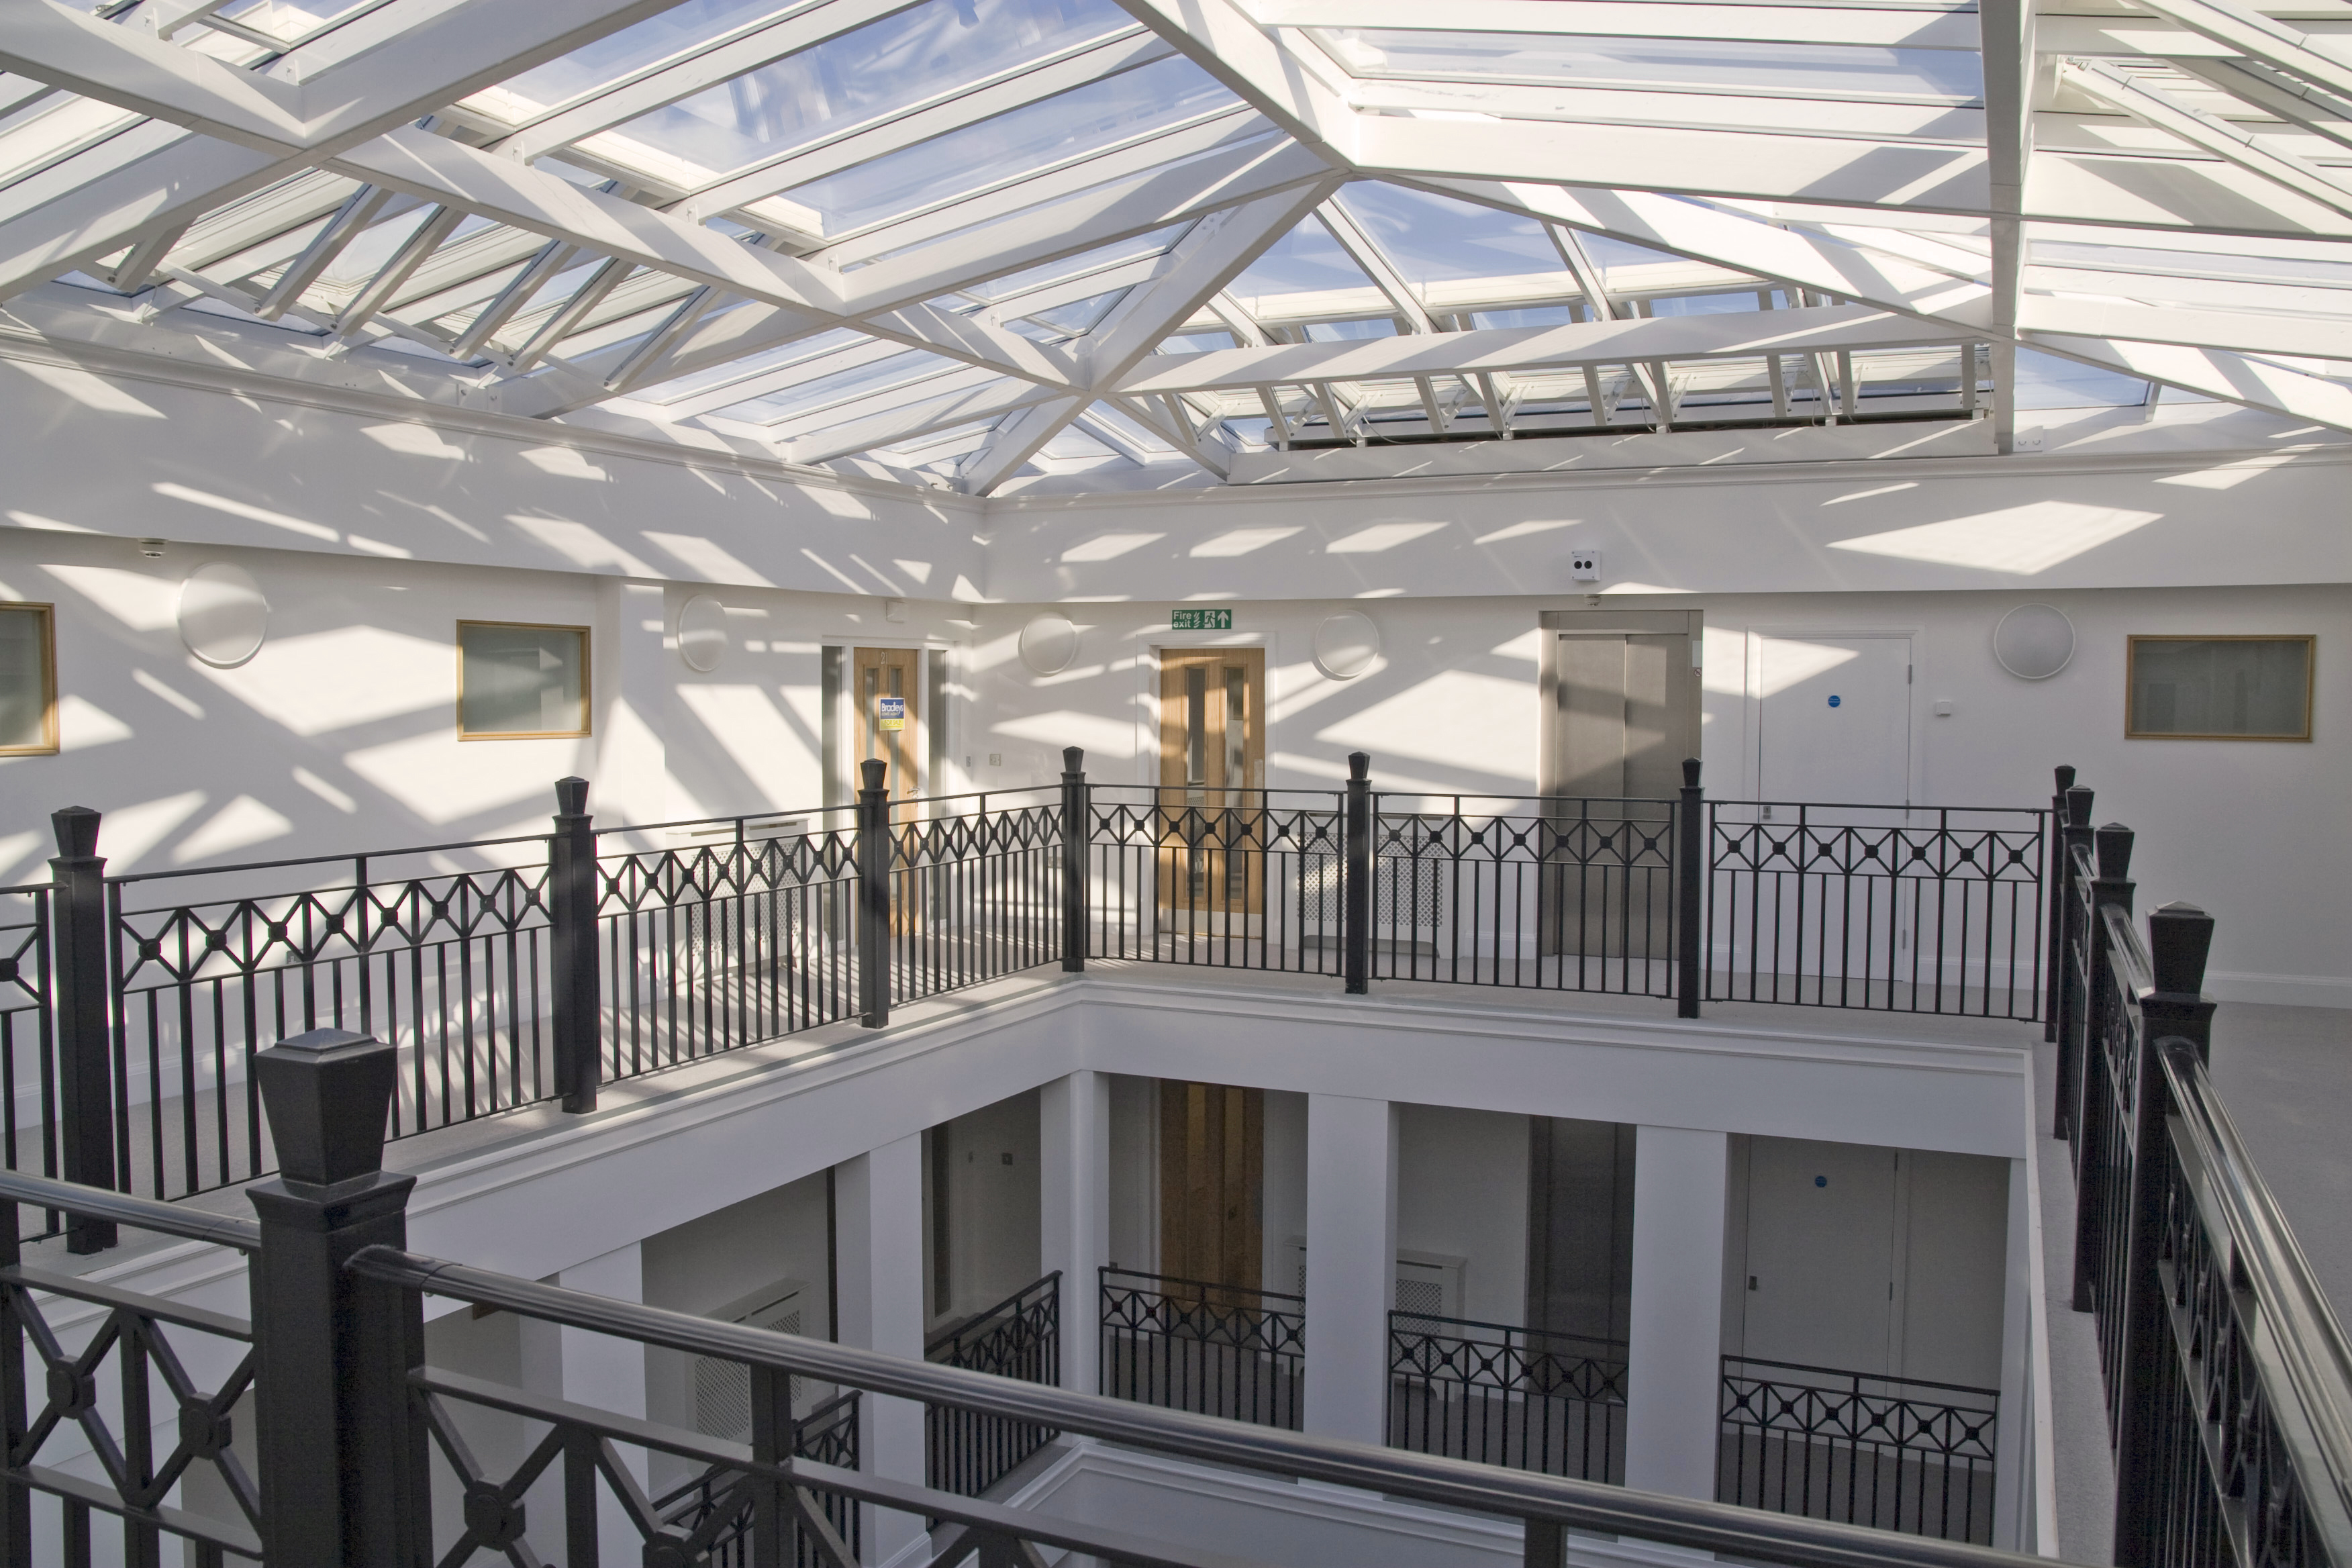 Sanditon apartments, Sidmouth, Devon - classical atrium roofroof